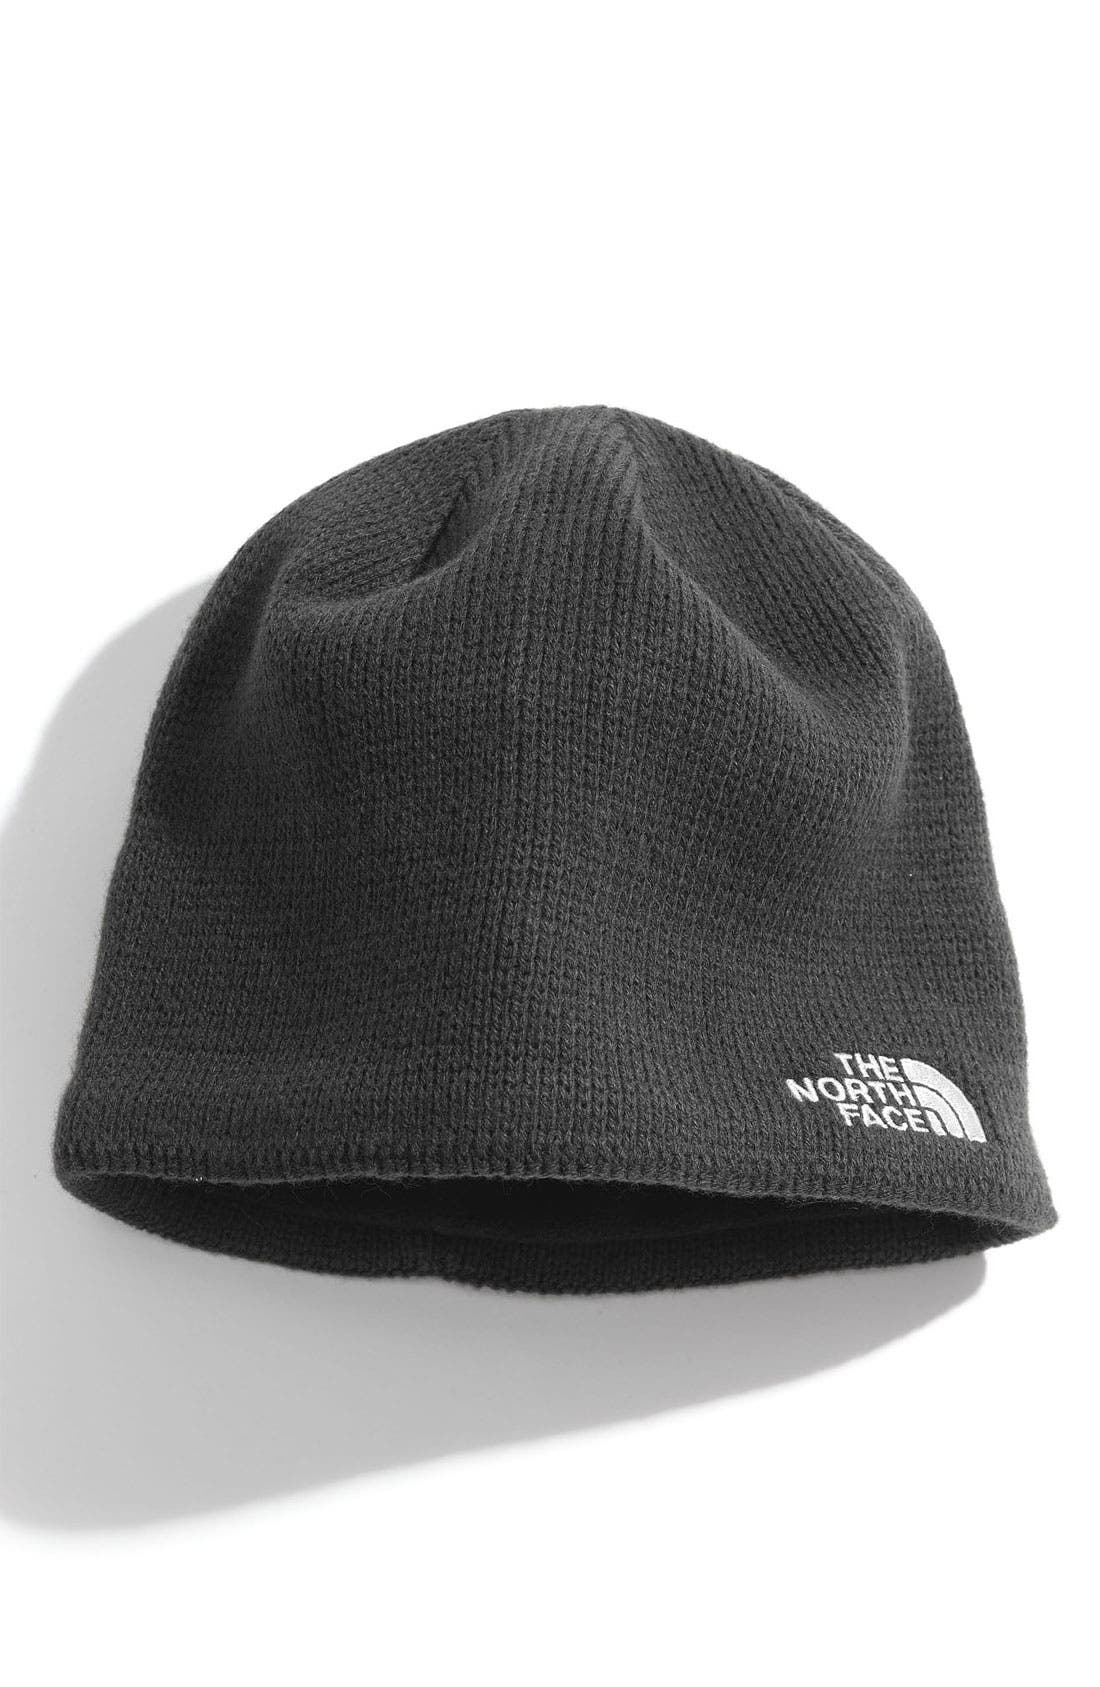 Alternate Image 1 Selected - The North Face Bones Fleece Lined Beanie